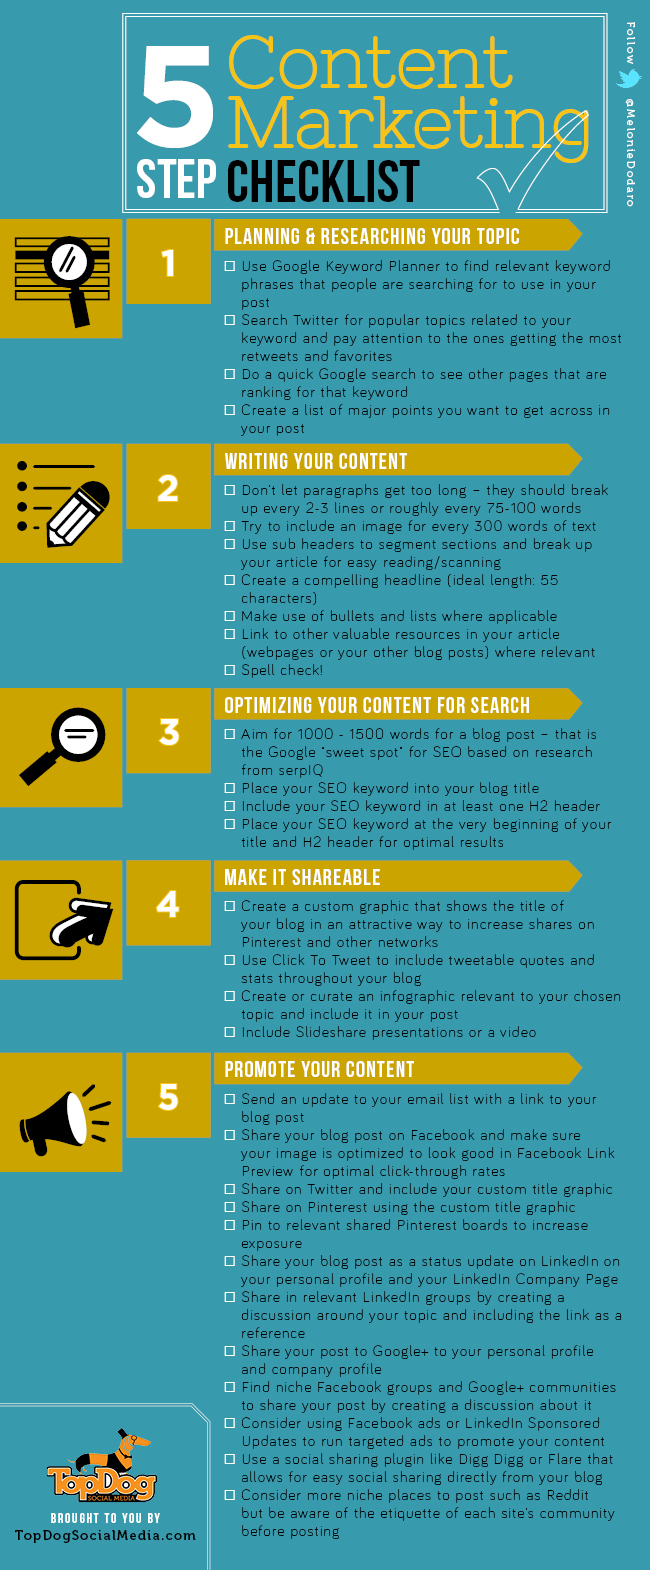 5 Step Content Marketing Checklist